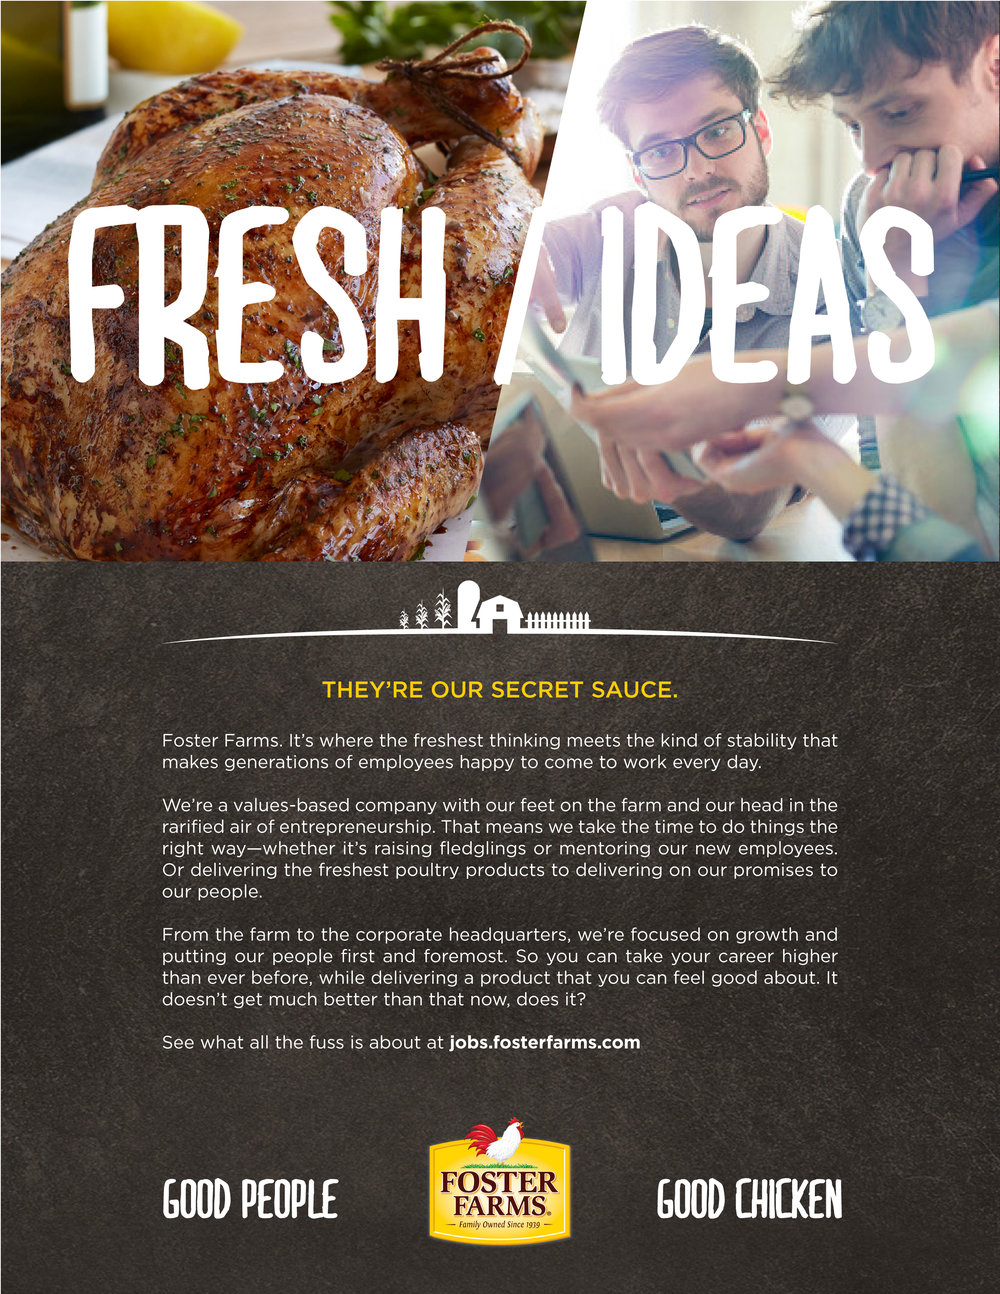 Foster Farms Branding and Design